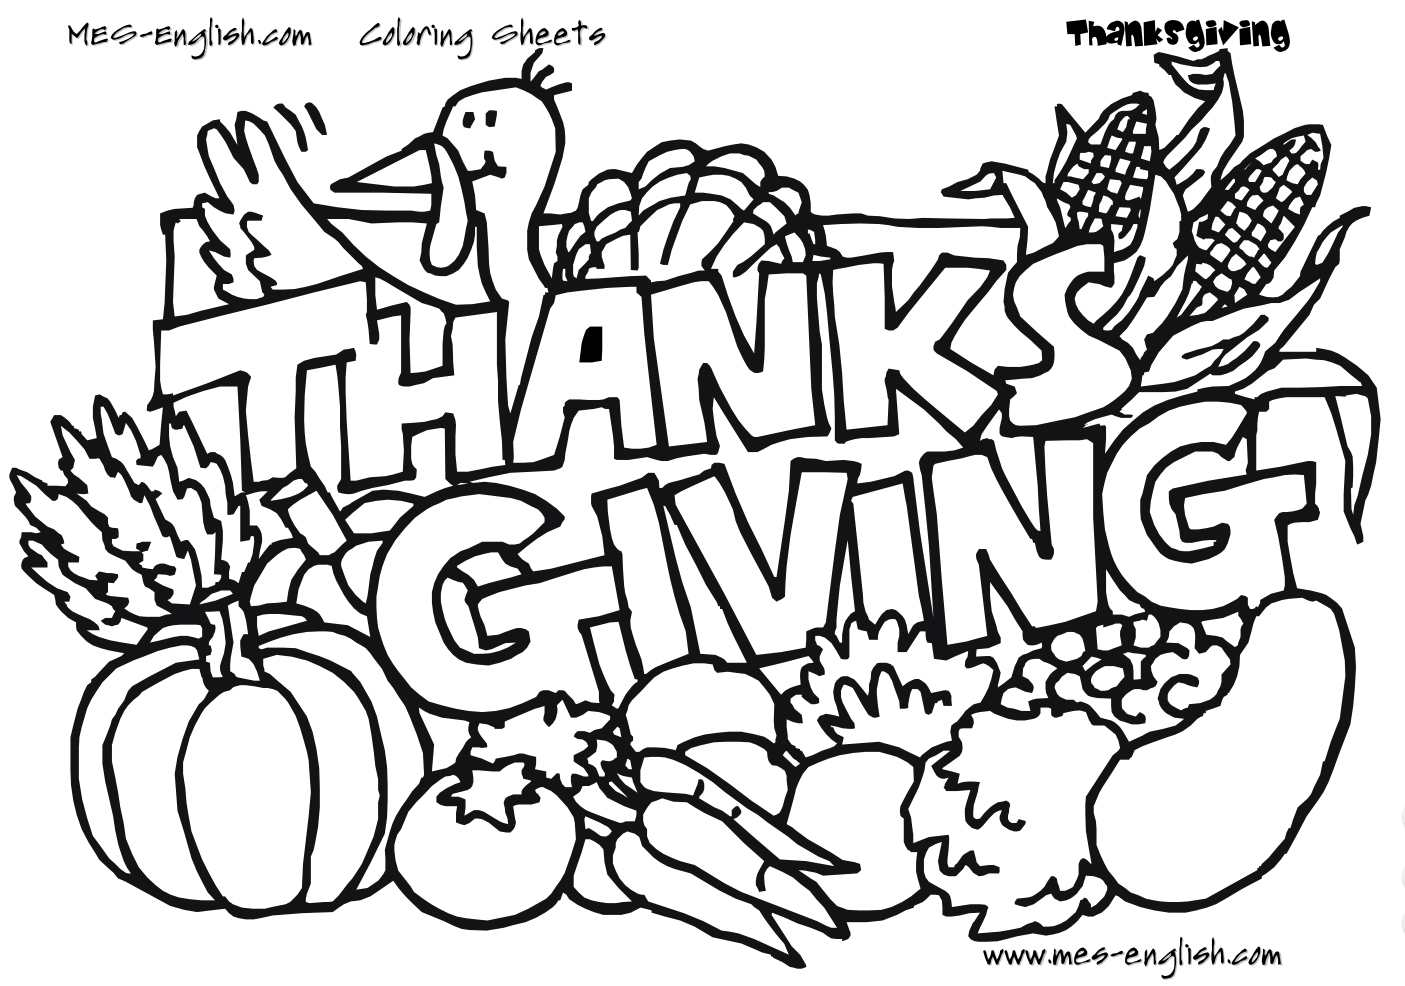 1405x986 Stunning Thanksgiving Coloring Sheet Preschool For Cure Hello